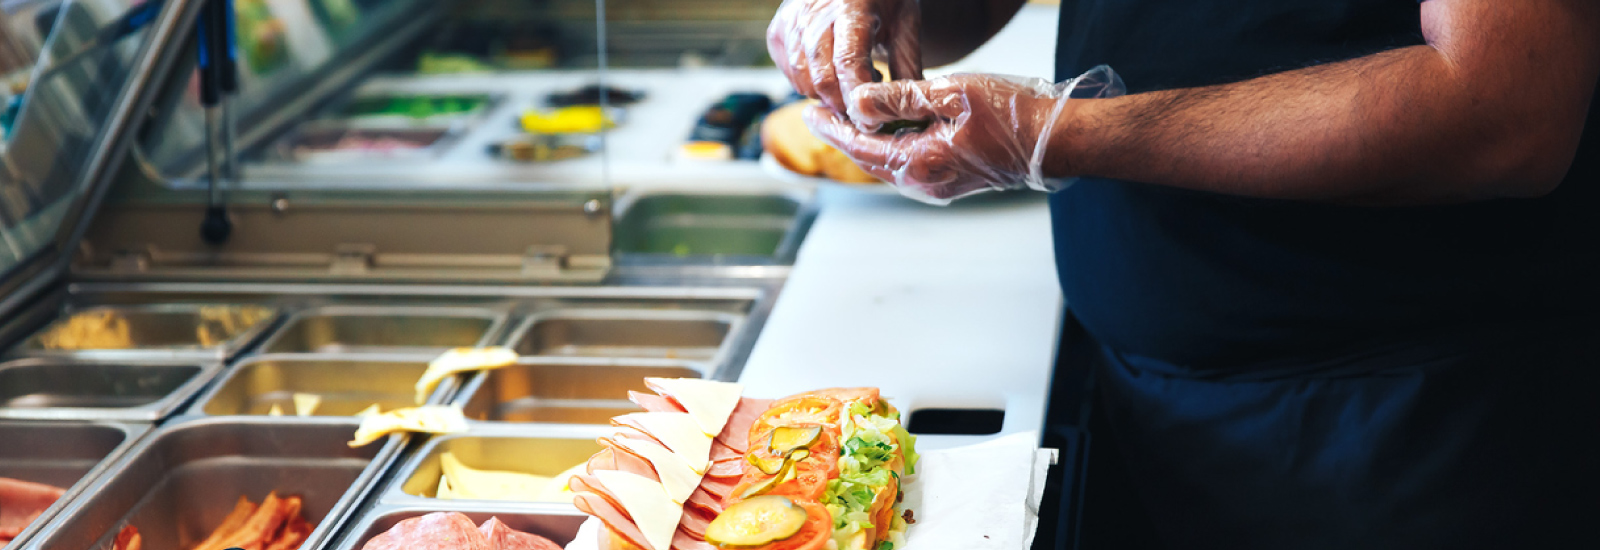 MWR Restaurants and Dining on Fort Stewart